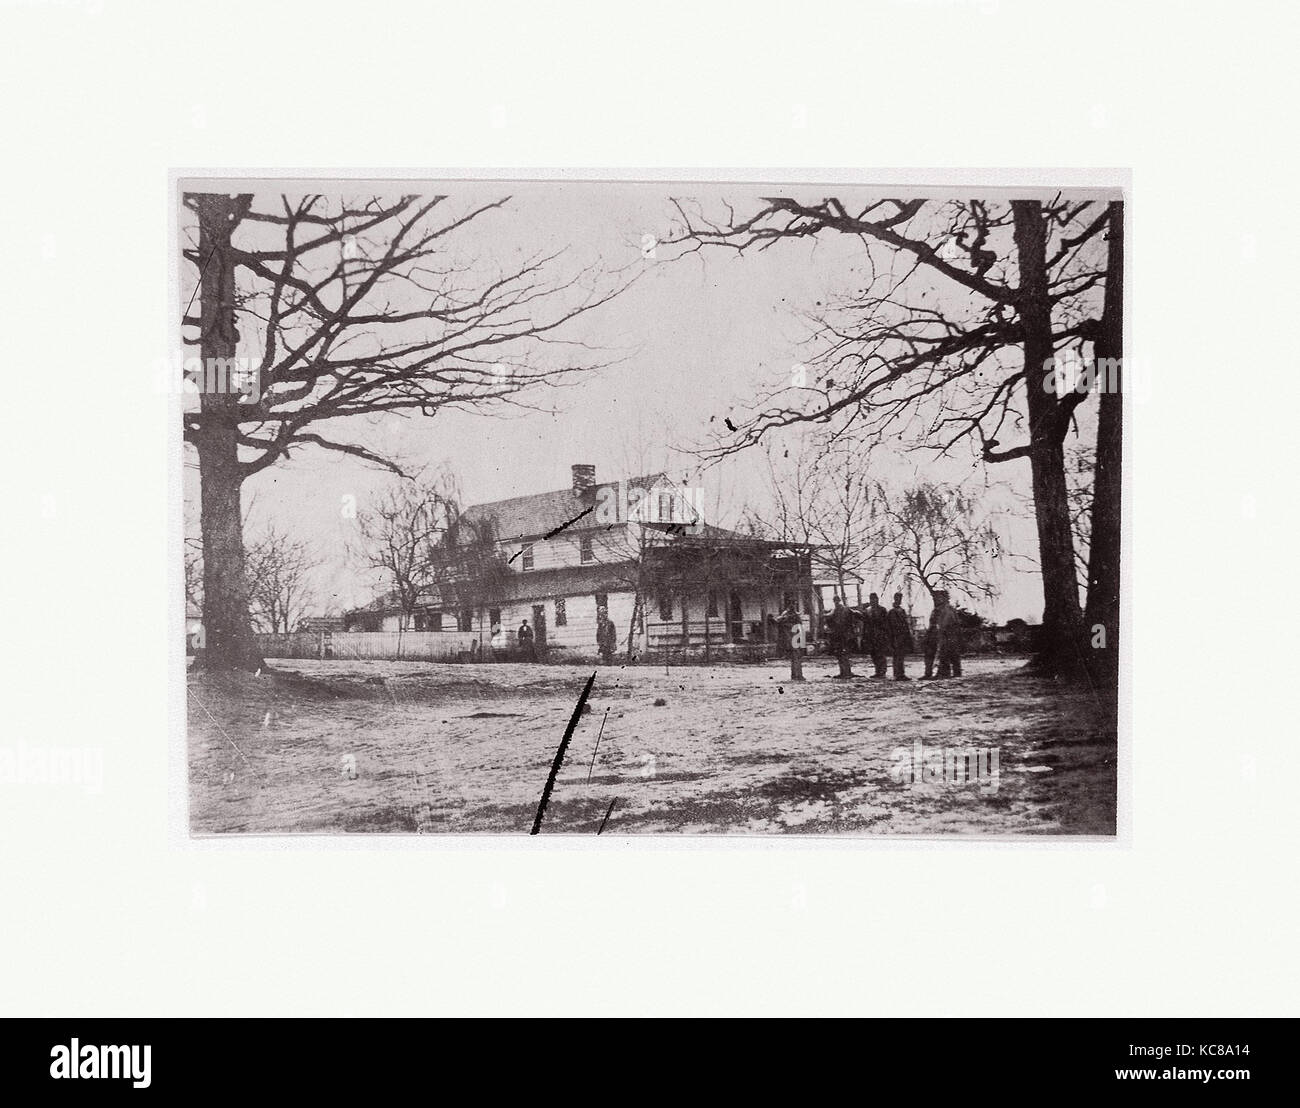 House framed by trees.  Brady album, p. 123, 1861–65 - Stock Image